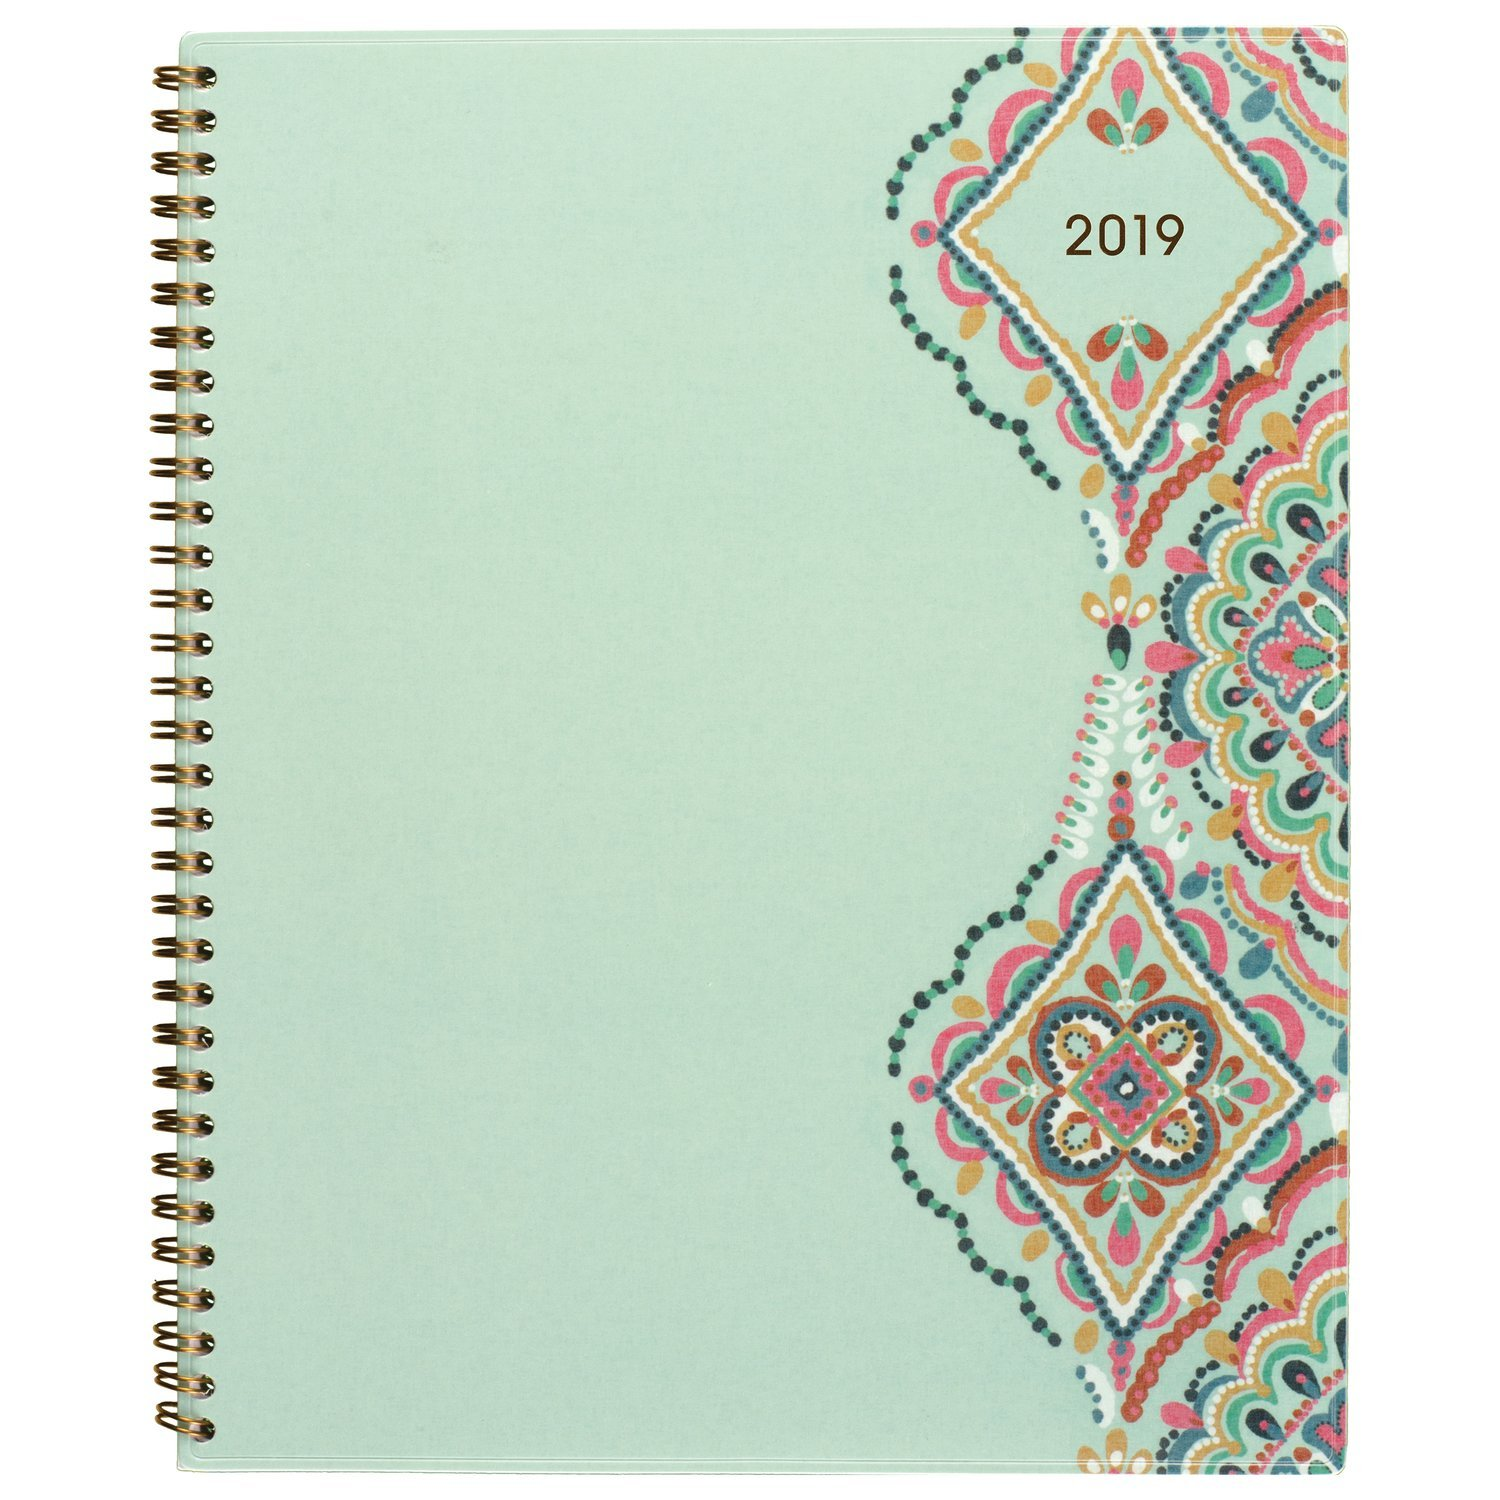 AT-A-GLANCE Weekly & Monthly Planner, 8-1/2'' x 11'', Large, Marrakesh, Light Green (182-905)